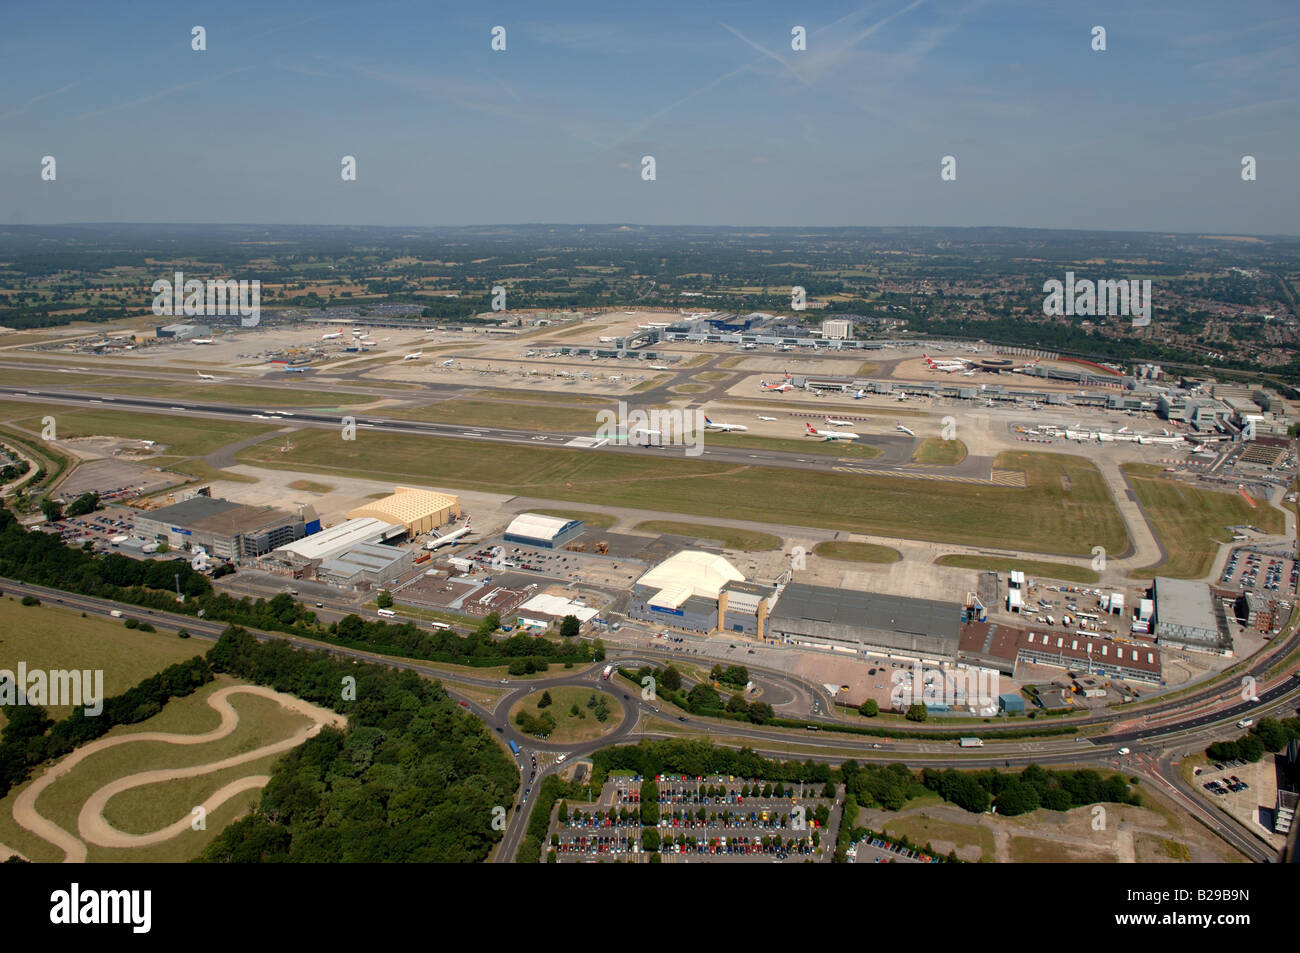 Gatwick Airport Date 12 03 2008 Ref ZB648 111149 0023 COMPULSORY CREDIT World Pictures Photoshot - Stock Image